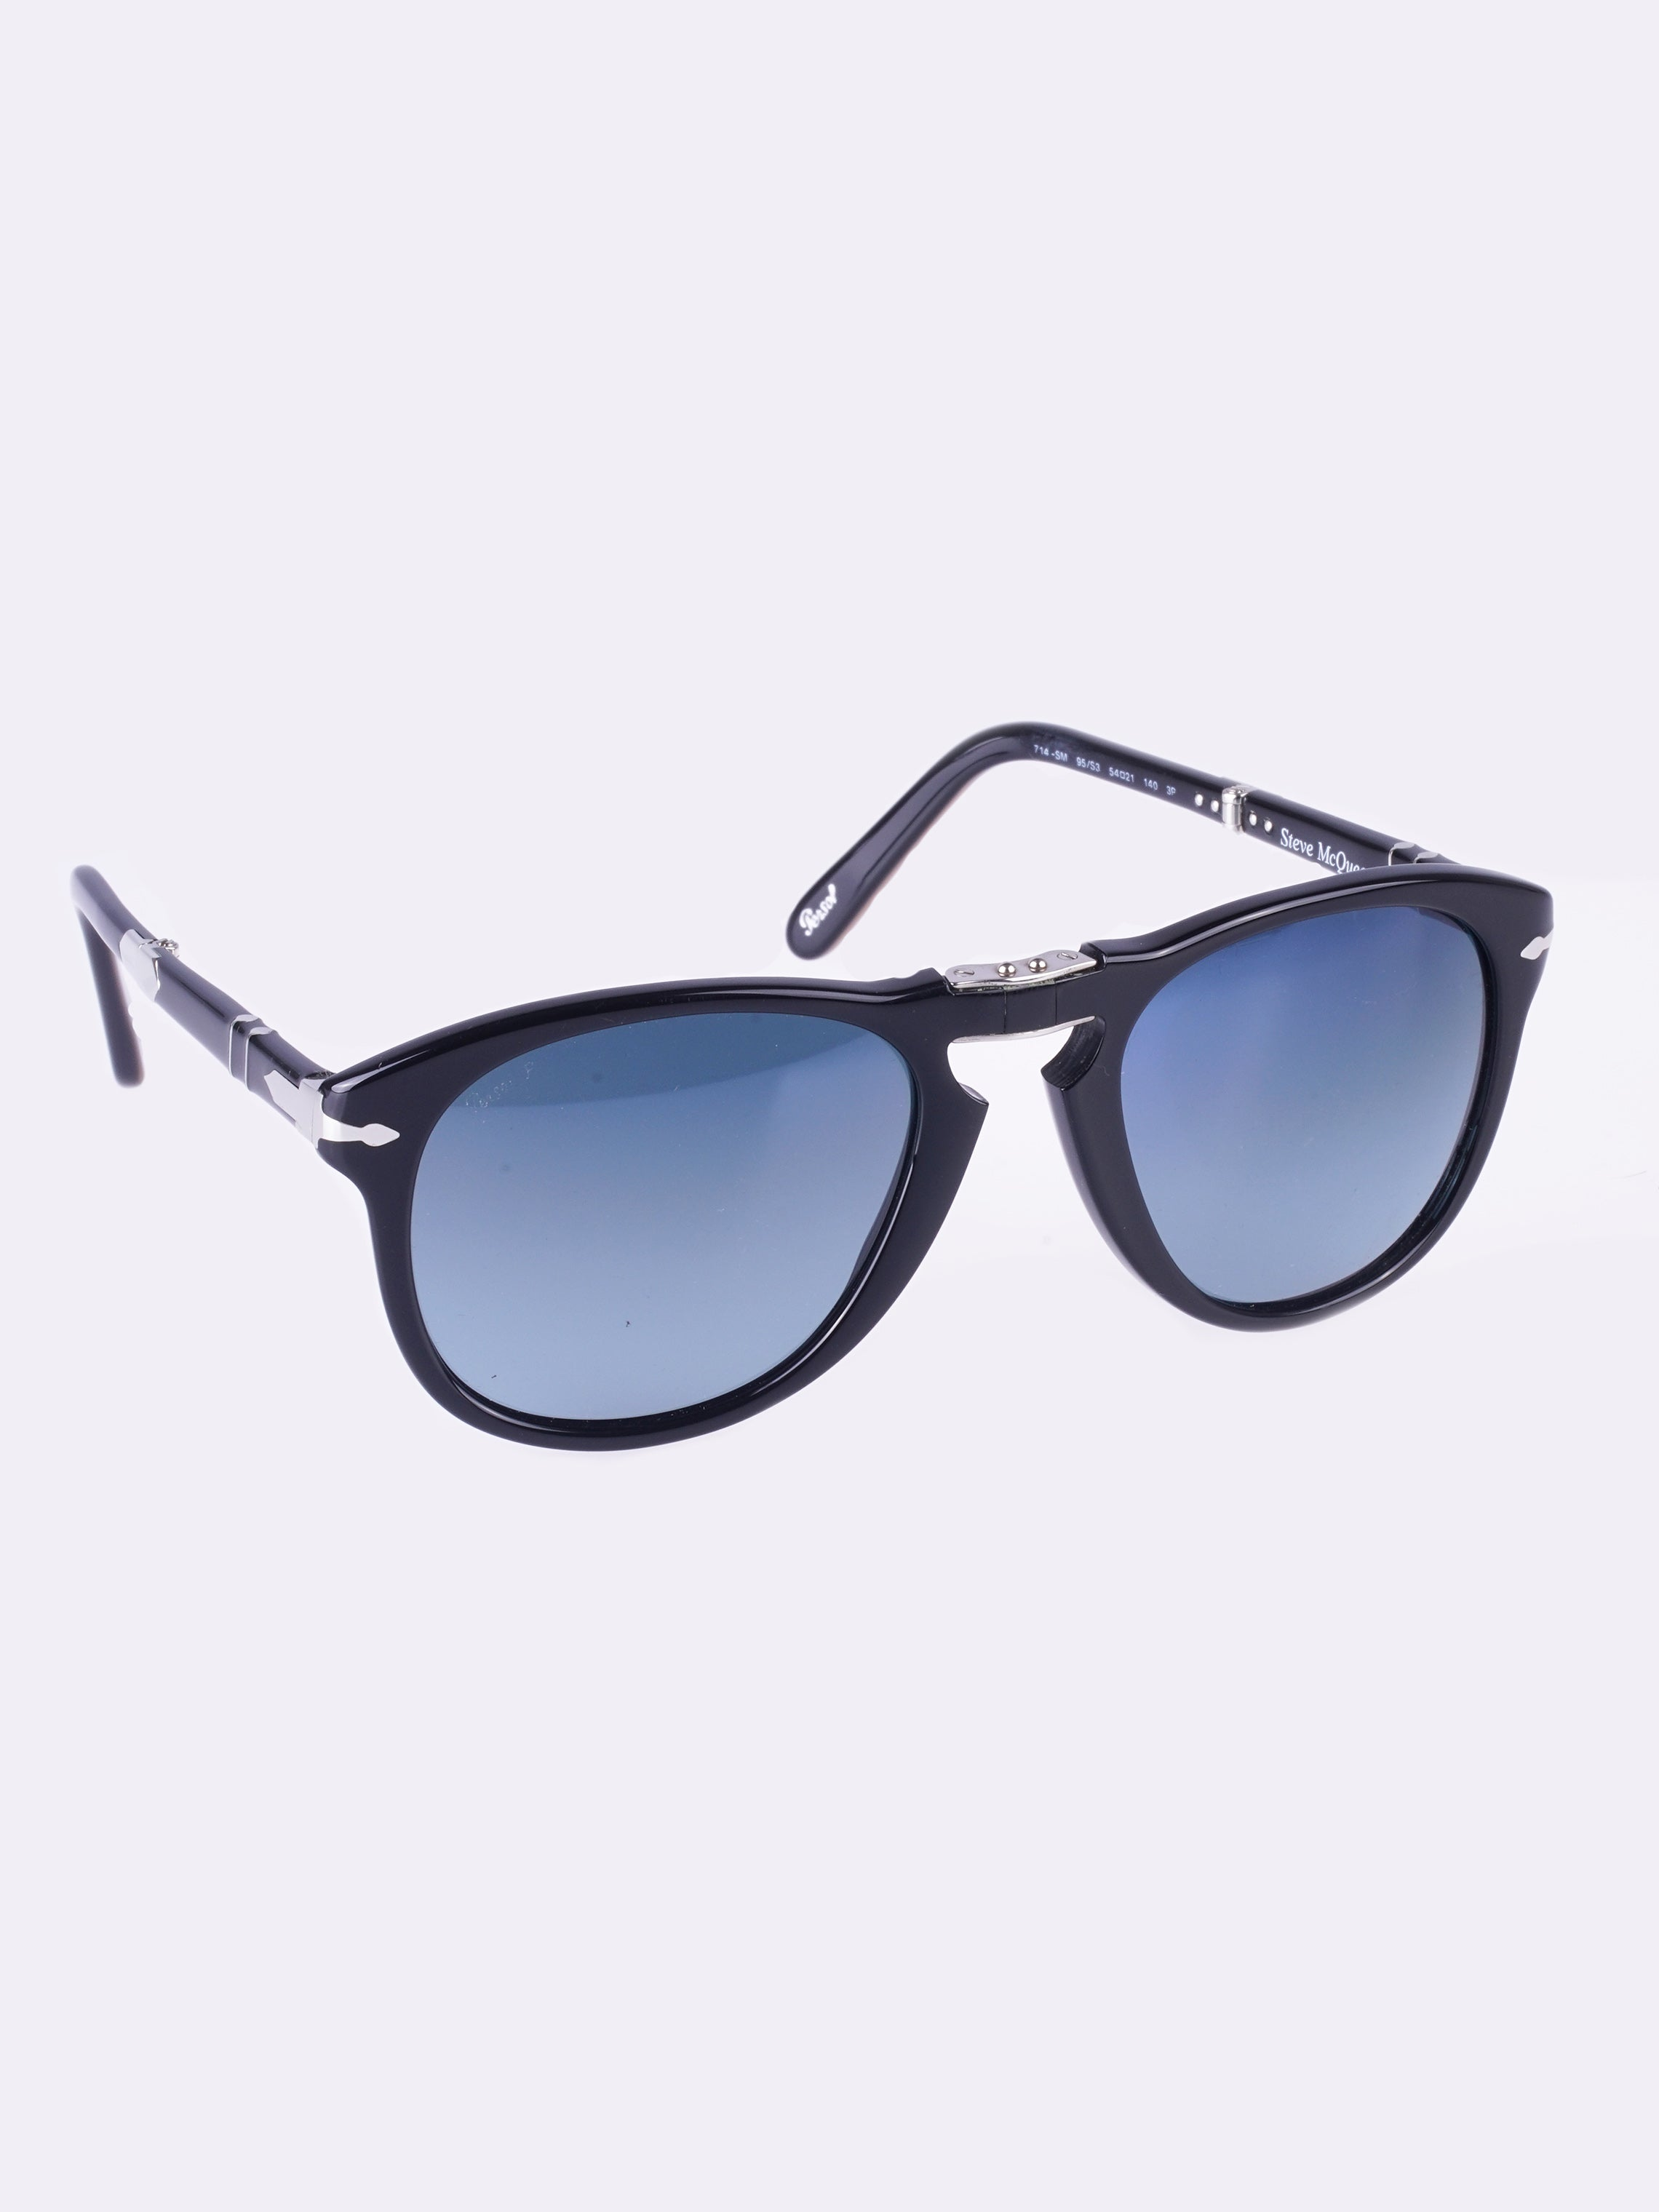 Persol Steve McQueen 714SM Limited Edition - Black